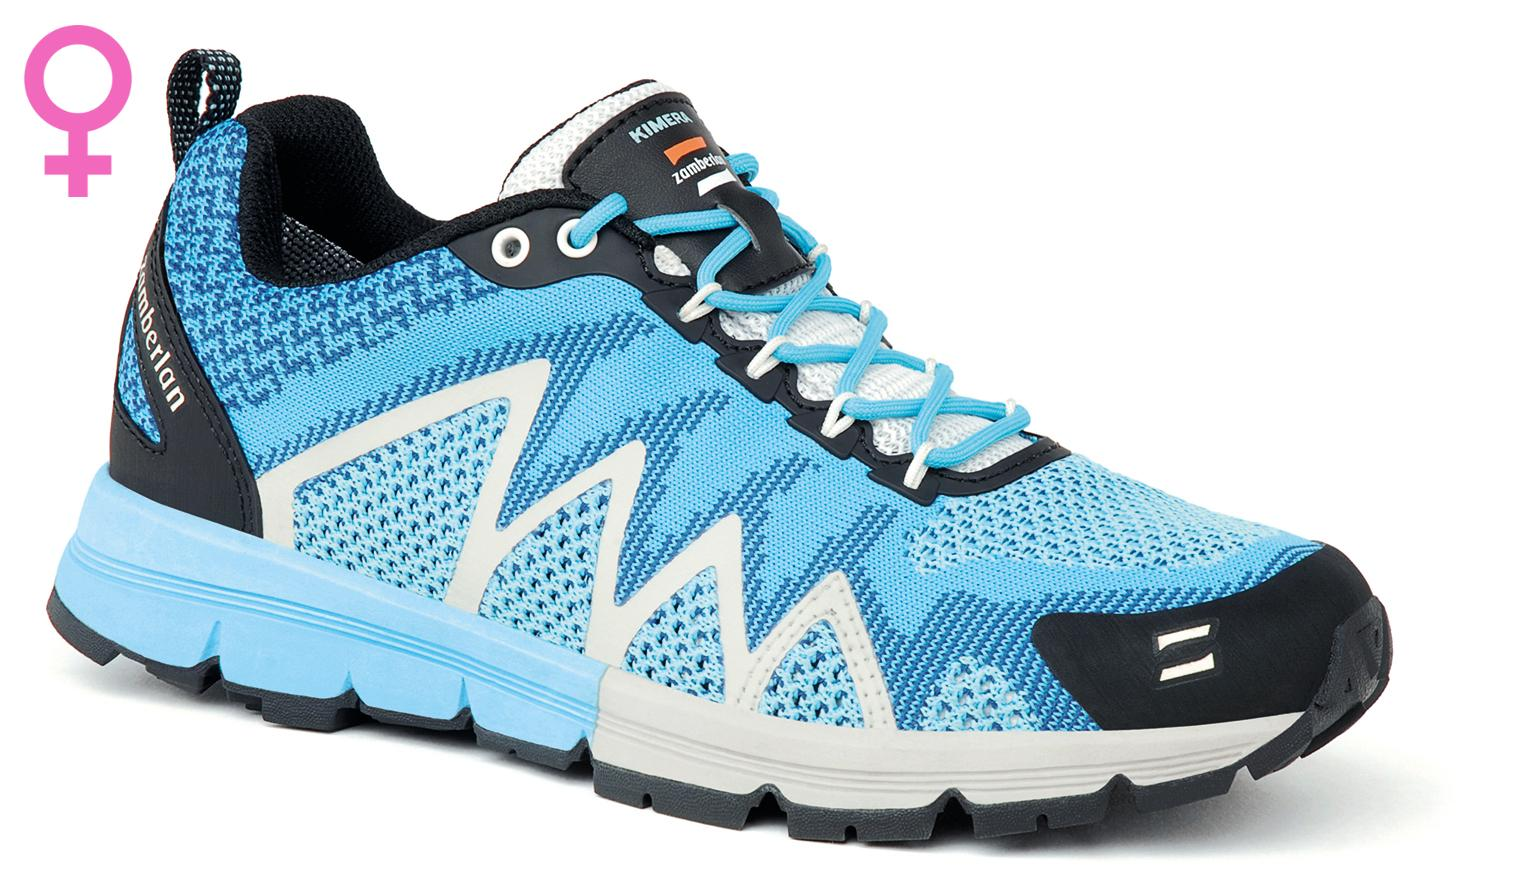 123 KIMERA RR WNS   -   Scarpe  Hiking   -   Light Blue